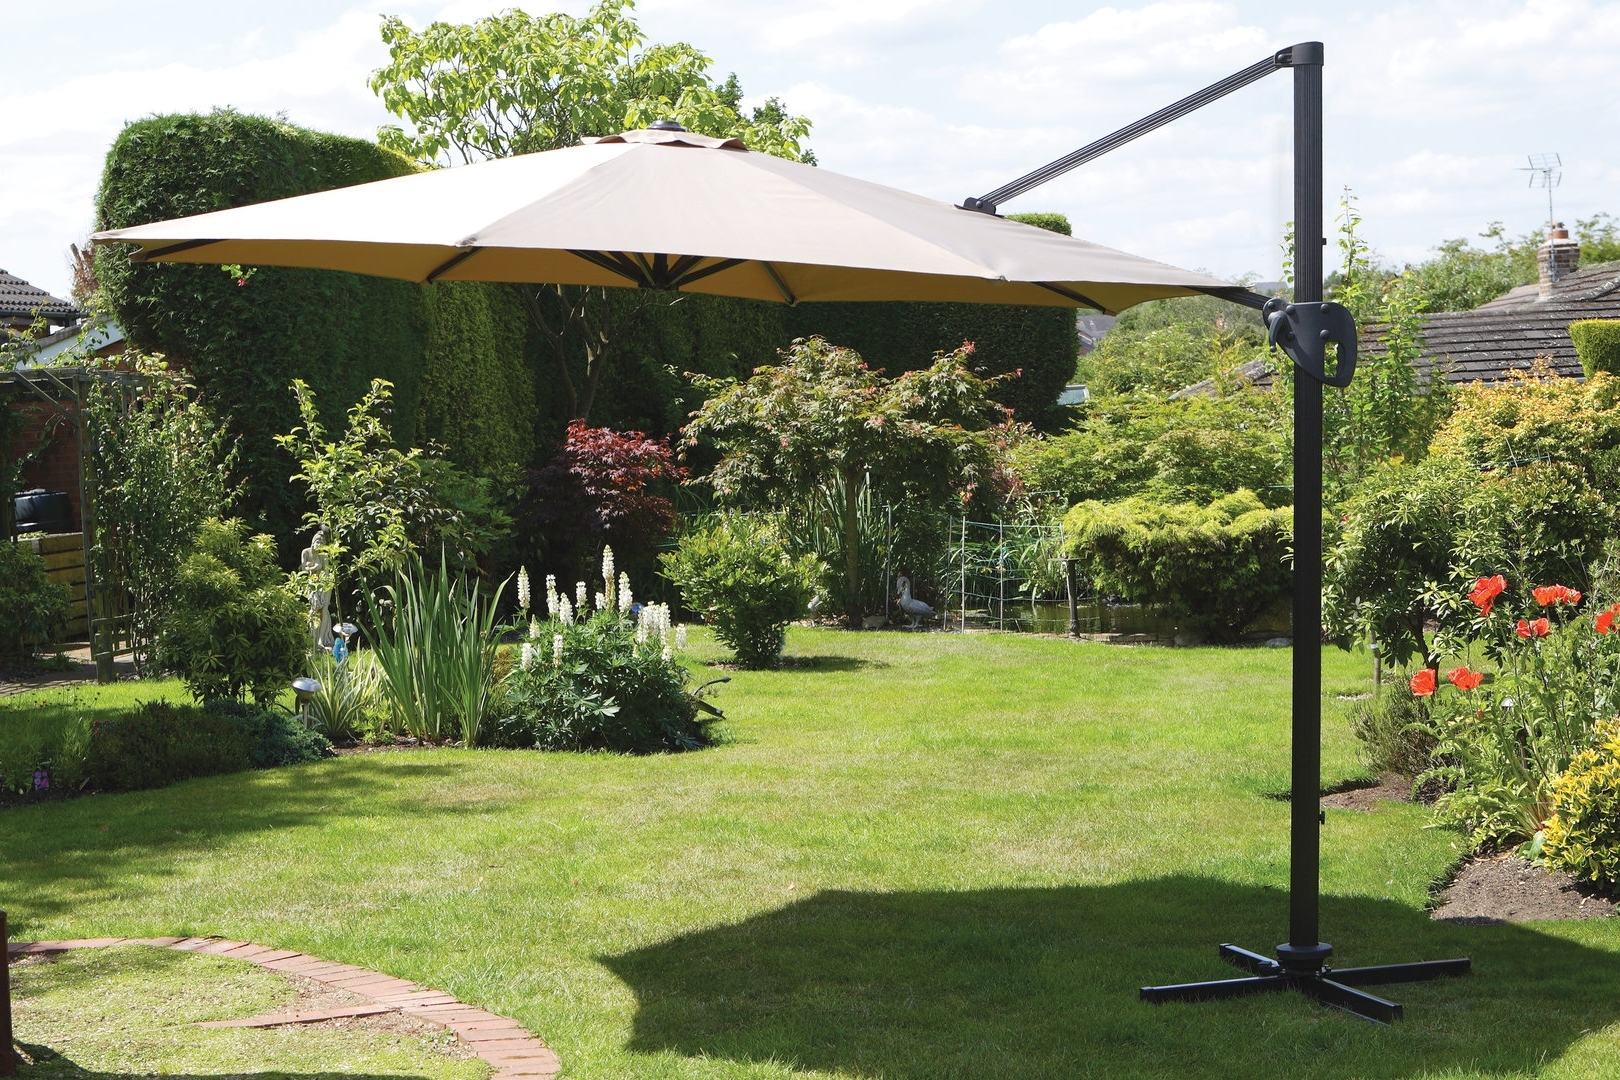 Large Patio Umbrellas Ideas — Wilson Home Ideas : Stylish Large For Famous Giant Patio Umbrellas (View 11 of 20)